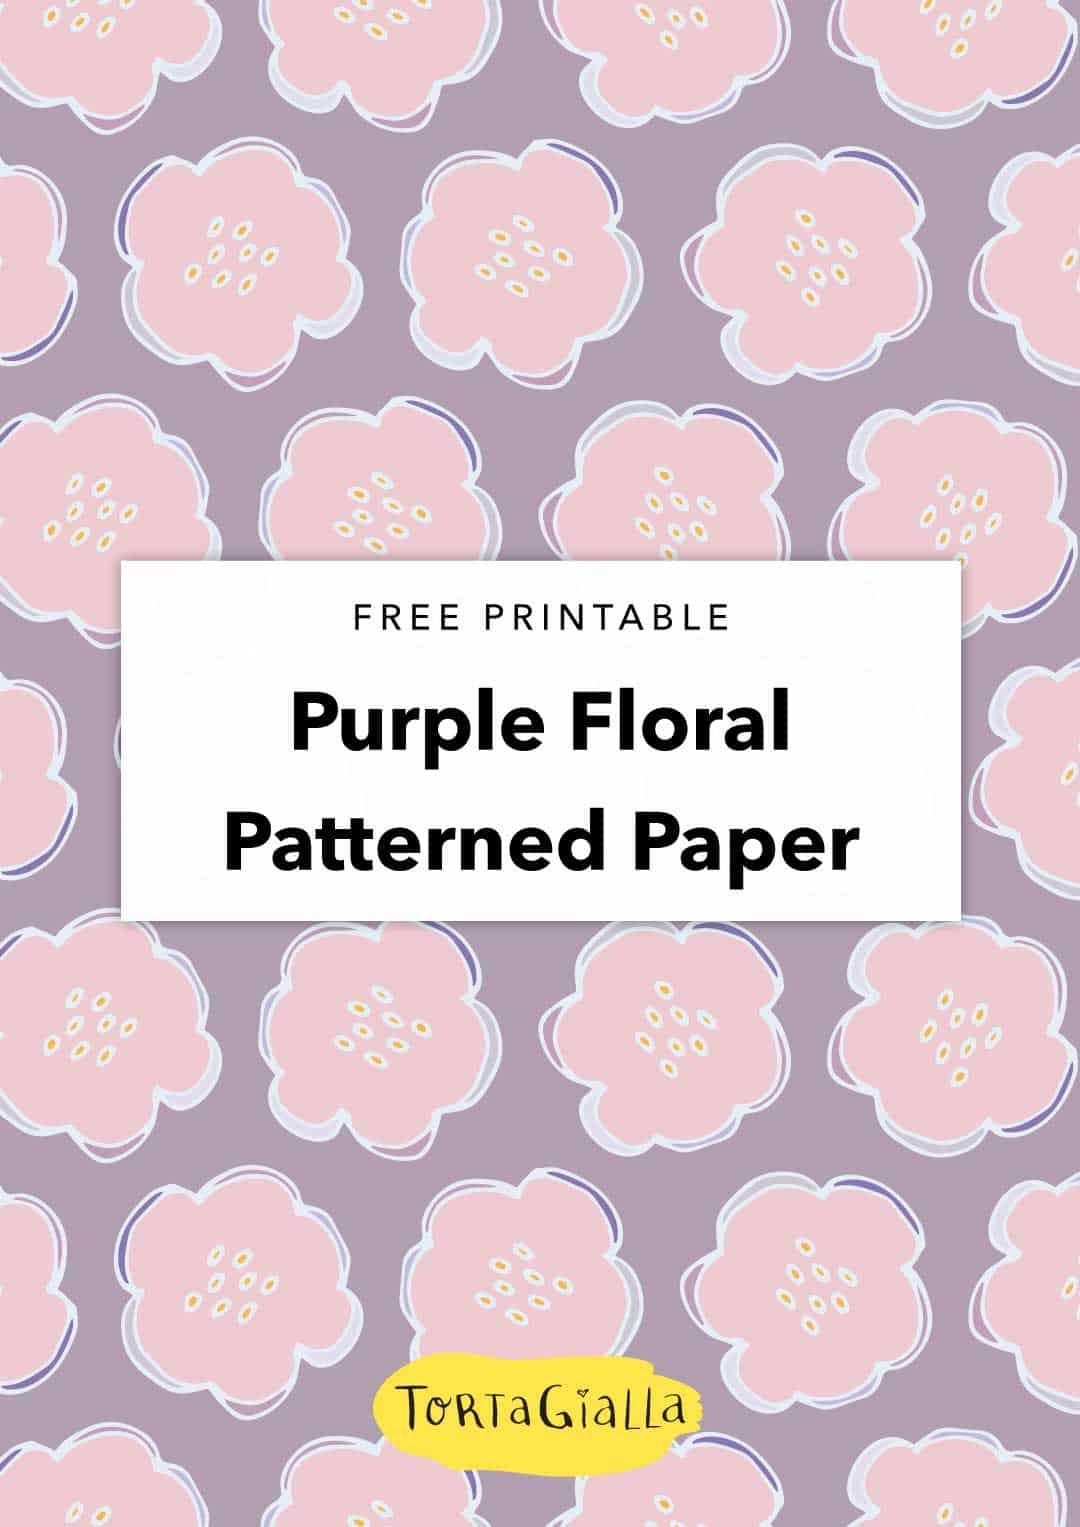 Check out this beautiful free digital paper featuring a pretty purple floral motif. Perfect for scrapbooking, cardmaking and various papercrafting projects.